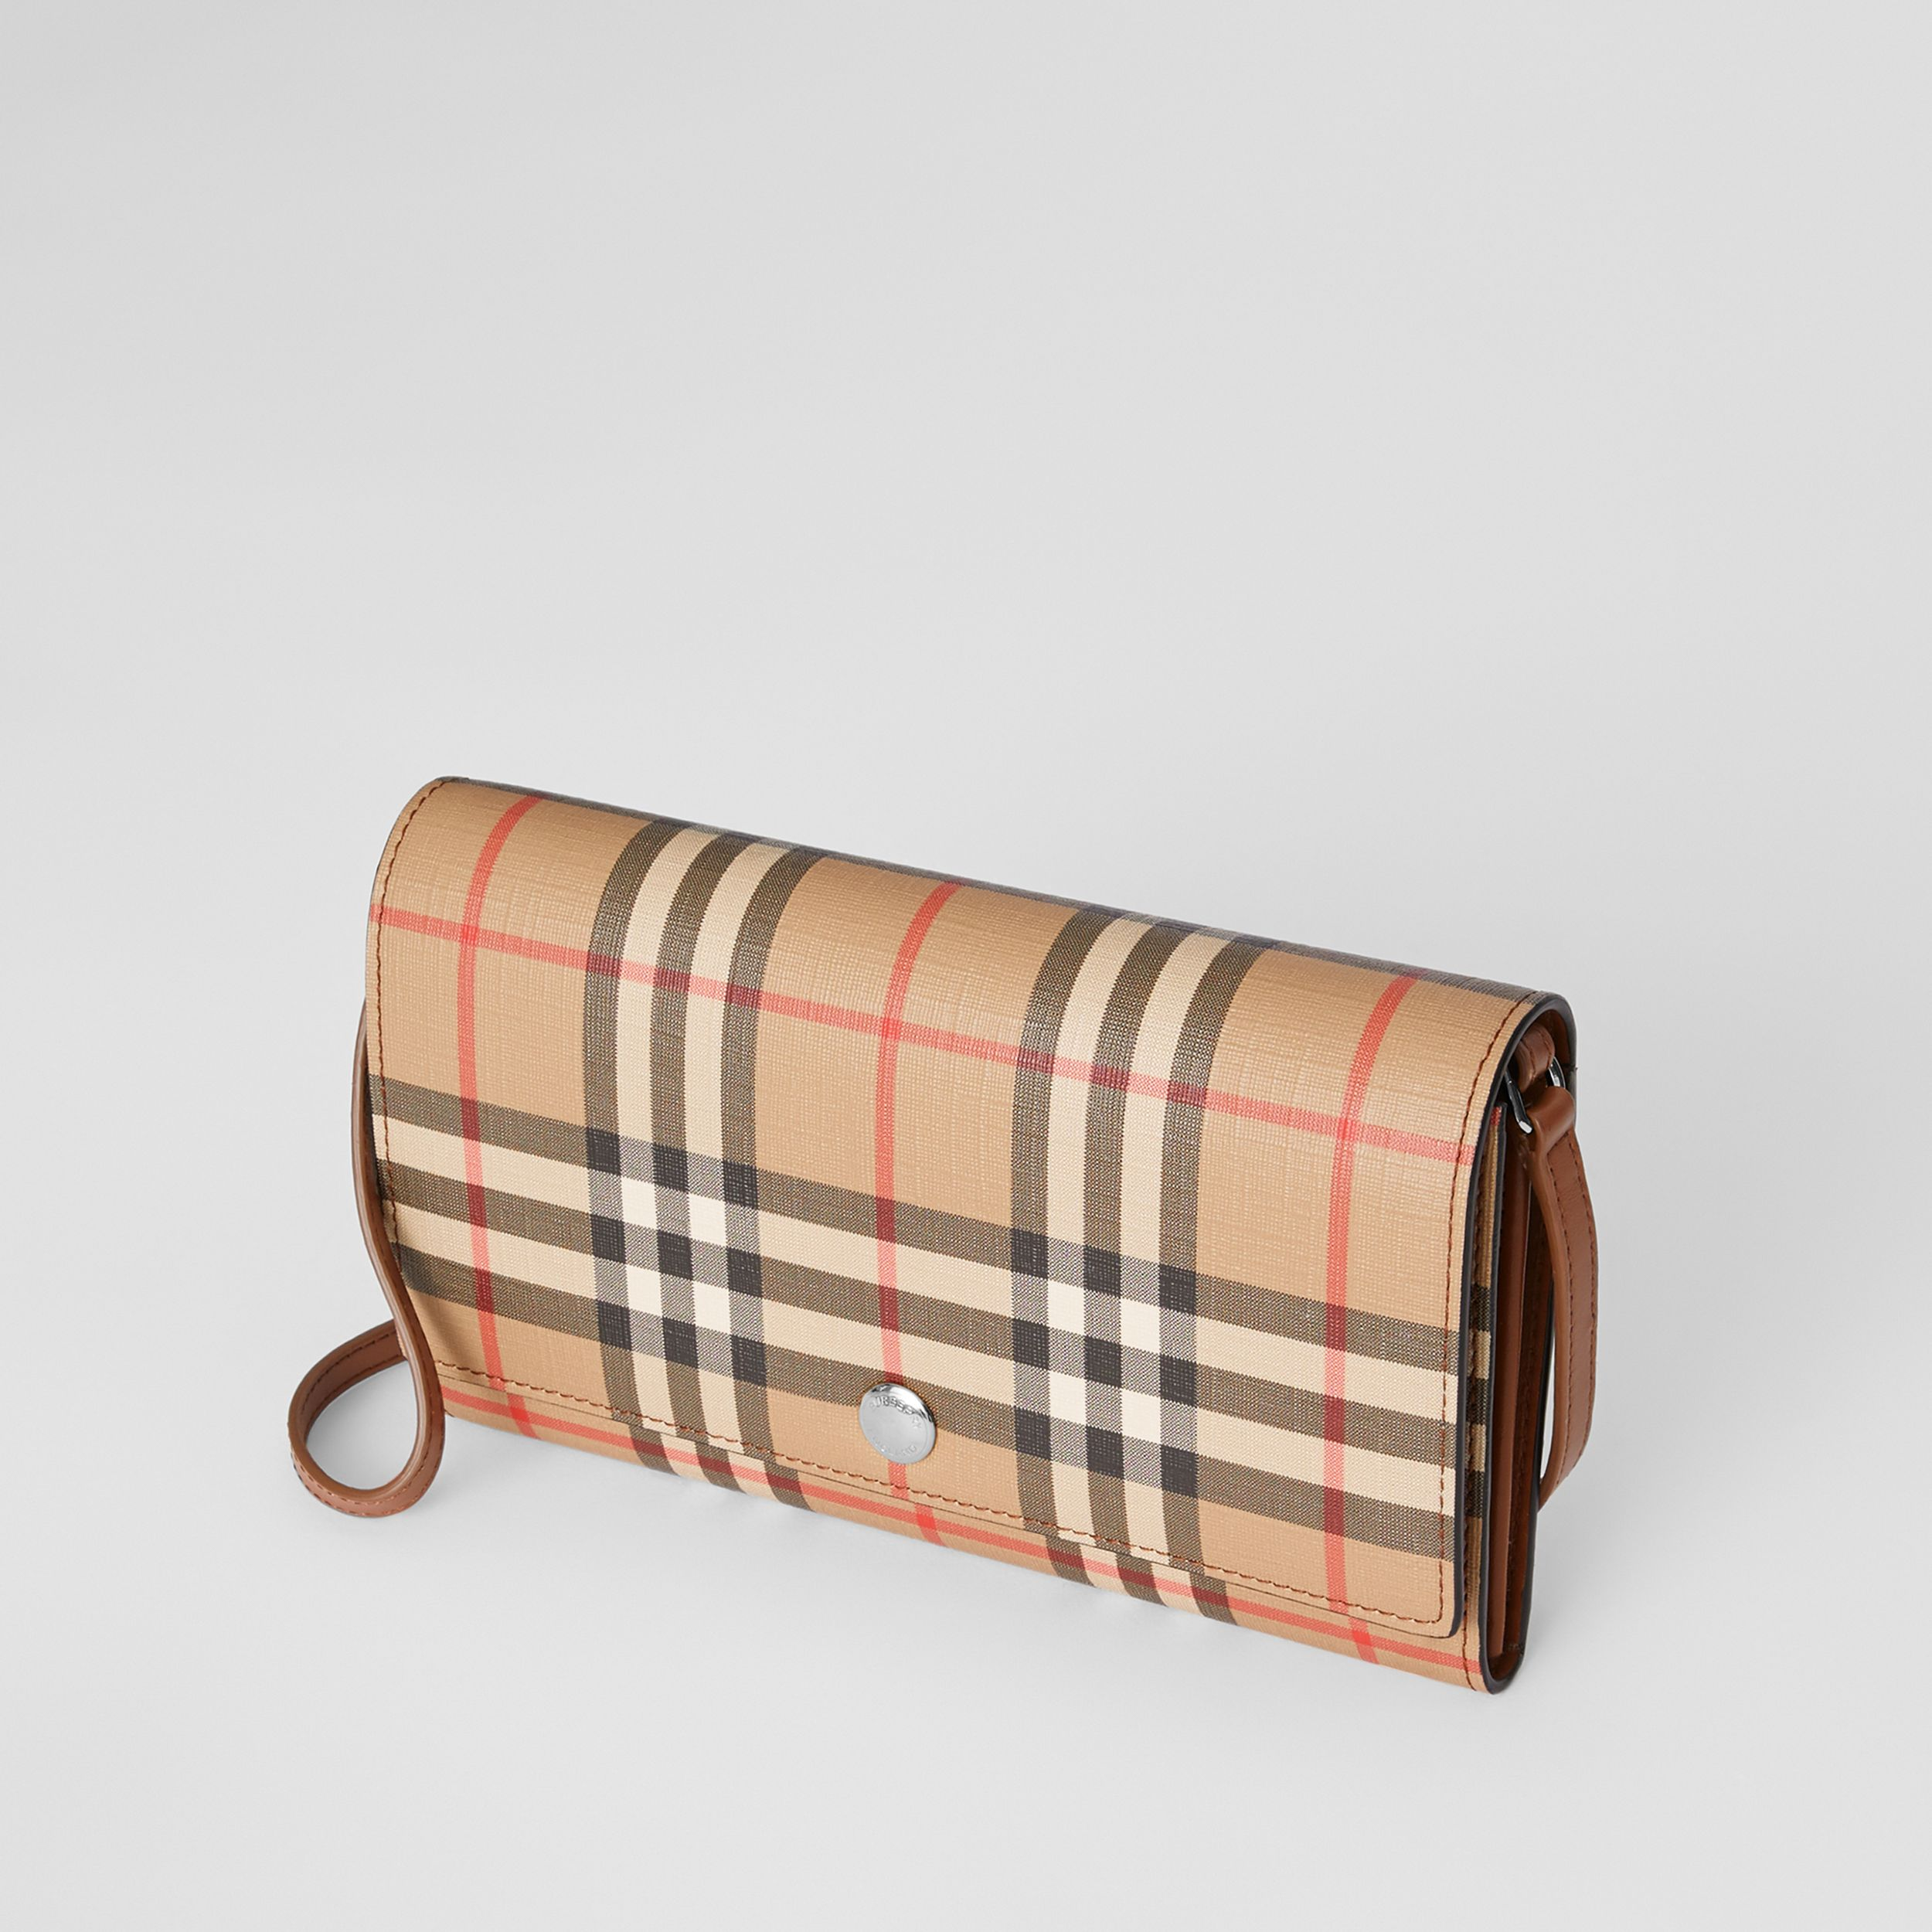 Vintage Check E-canvas Wallet with Detachable Strap in Malt Brown - Women | Burberry Canada - 4